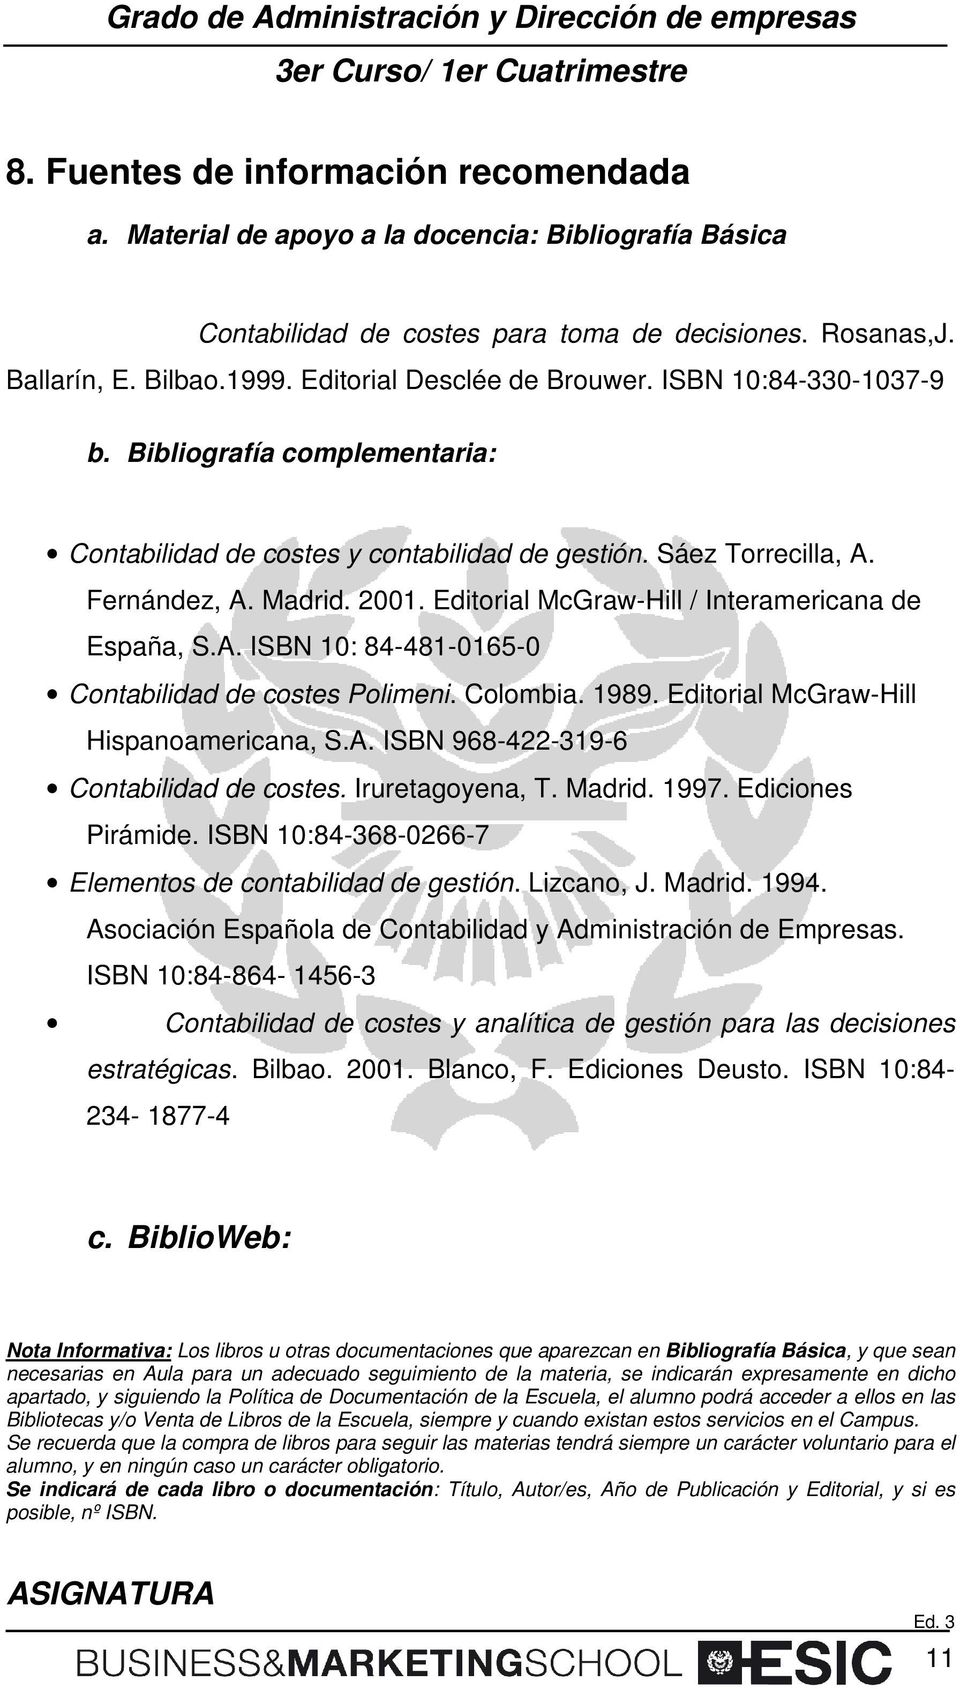 Editorial McGraw-Hill / Interamericana de España, S.A. ISBN 10: 84-481-0165-0 Contabilidad de costes Polimeni. Colombia. 1989. Editorial McGraw-Hill Hispanoamericana, S.A. ISBN 968-422-319-6 Contabilidad de costes.